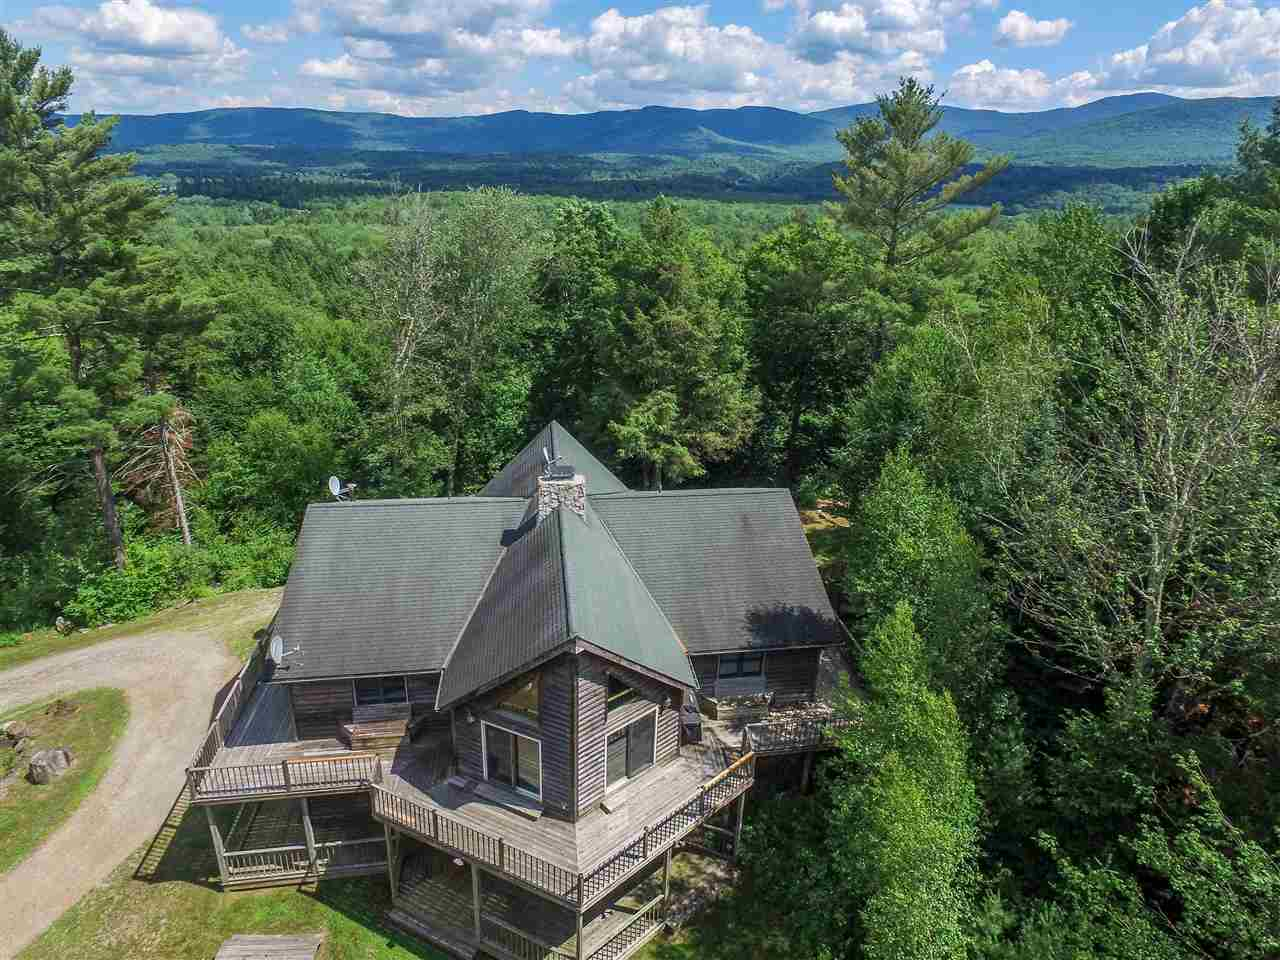 Property for sale at 5217 Stagecoach Road, Morristown,  VT 05661